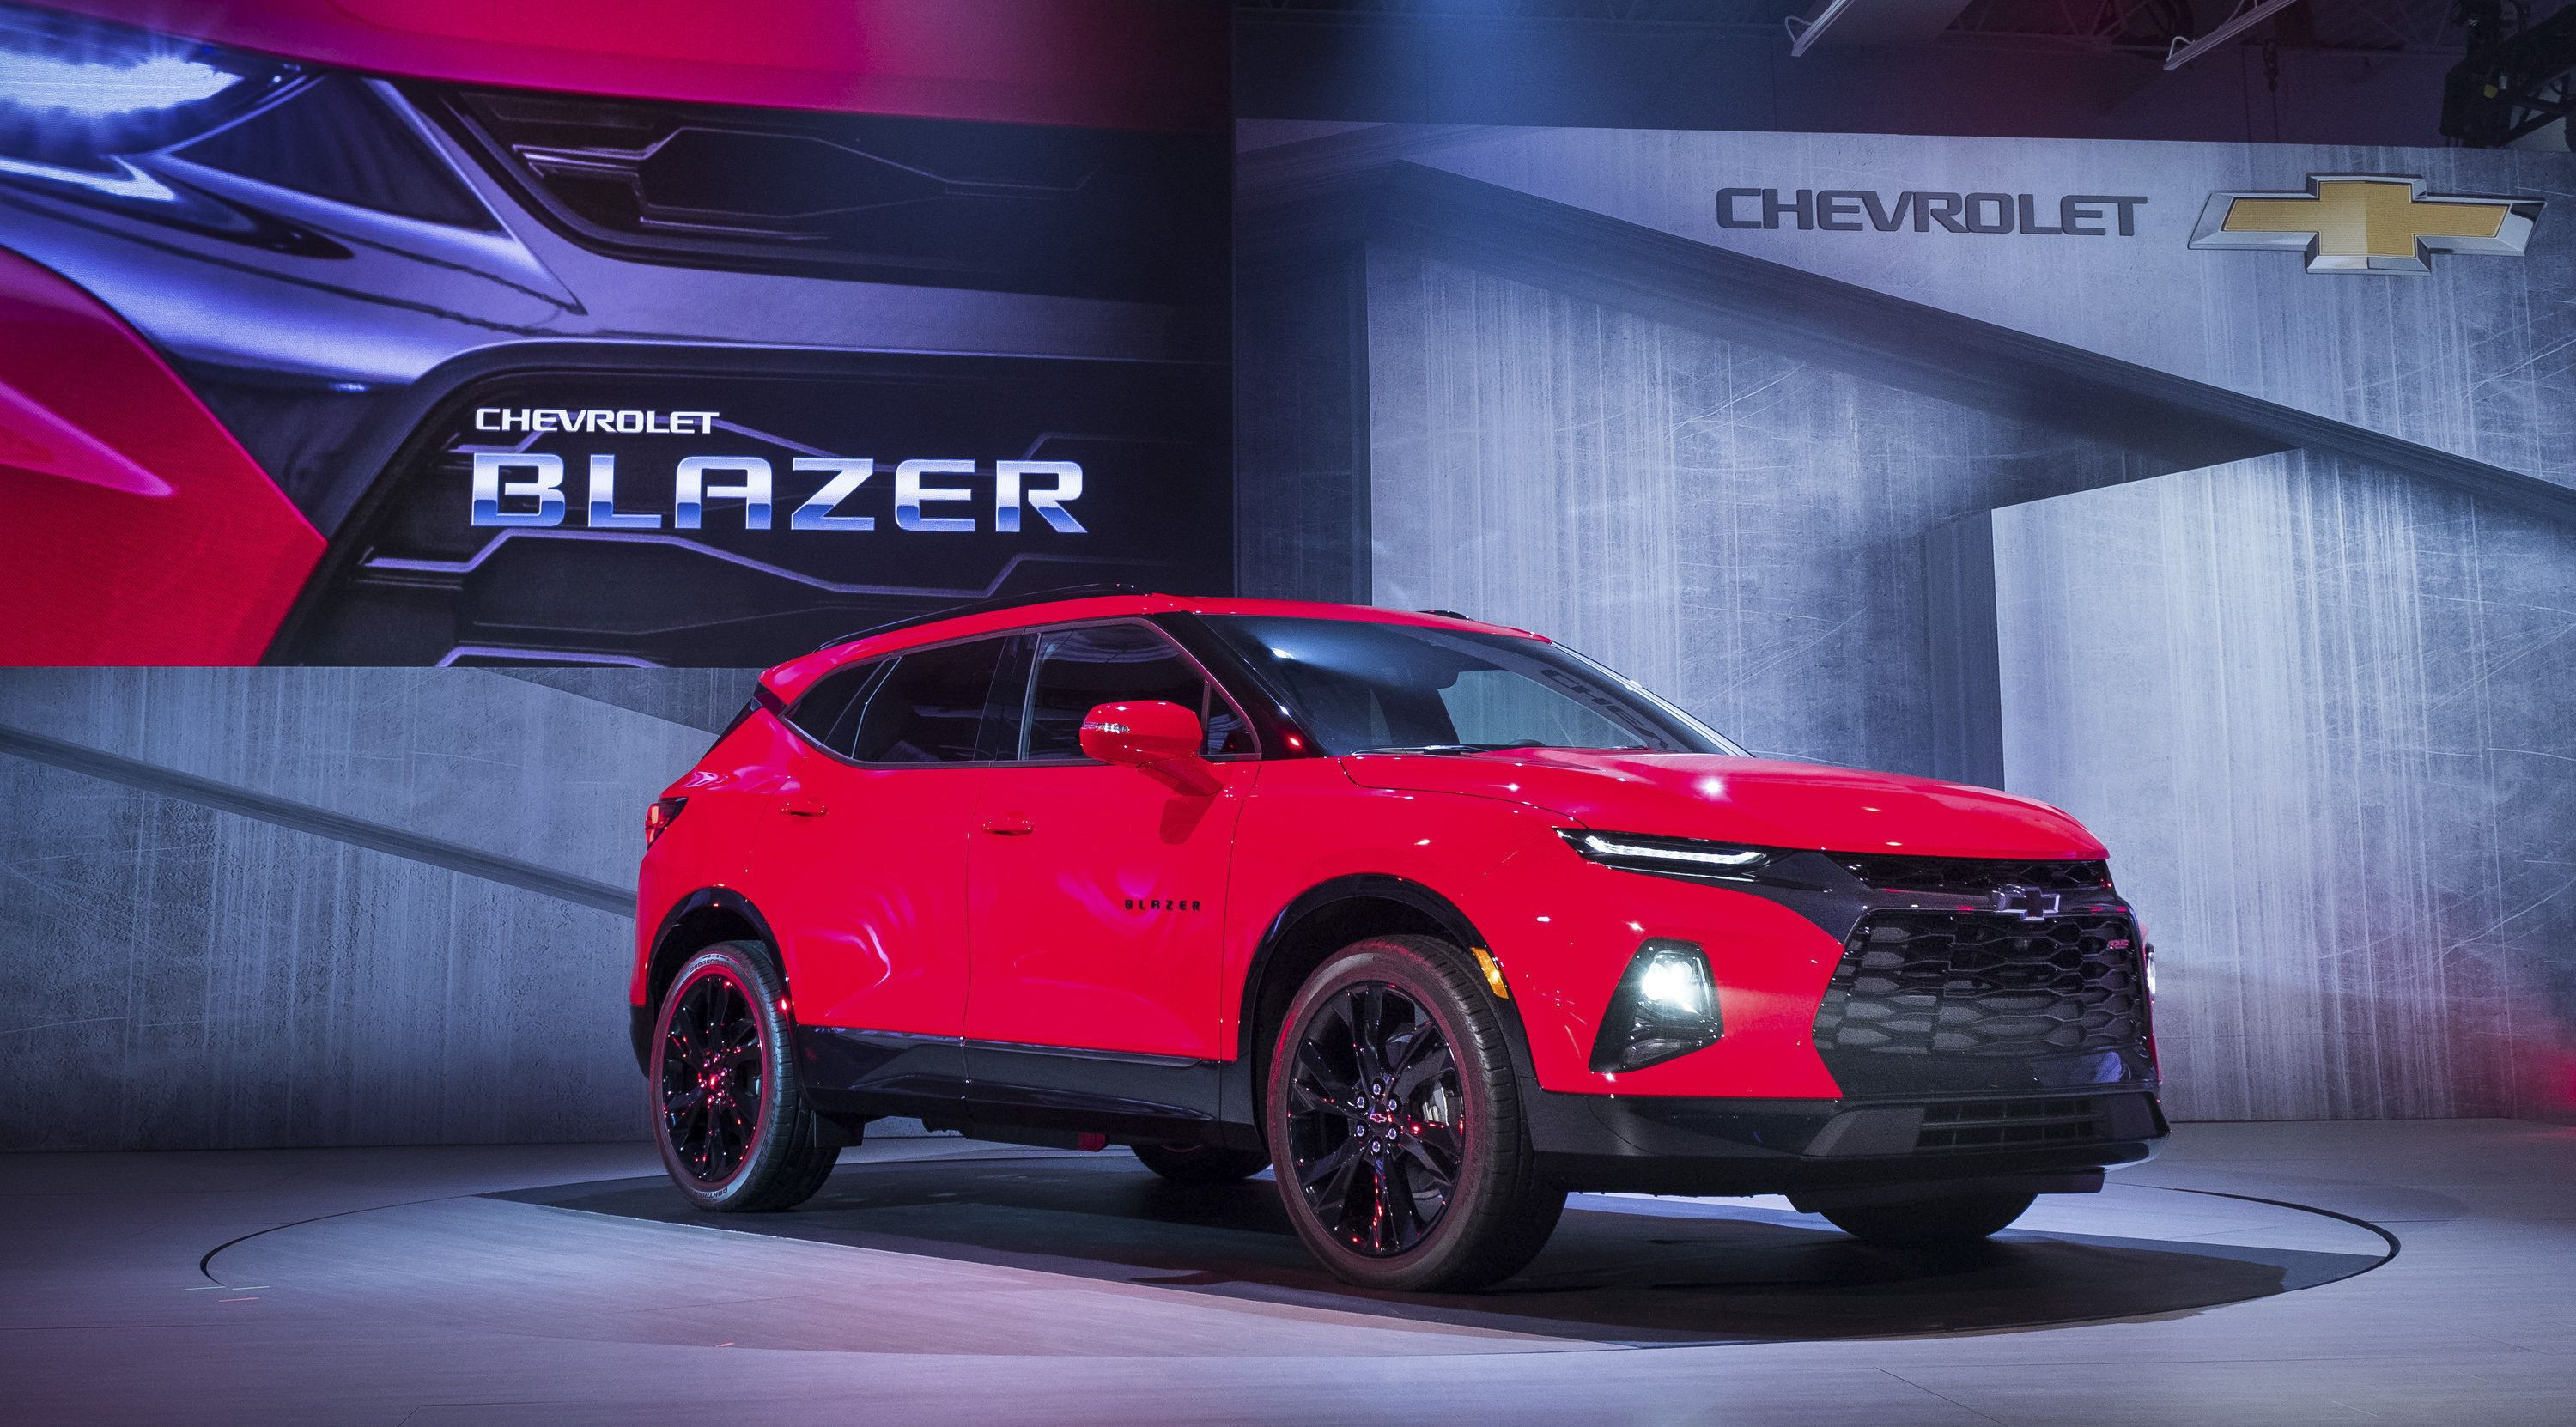 Five Surprising Facts About The New Chevrolet Blazer Chevrolet Blazer Chevy Trailblazer Chevrolet